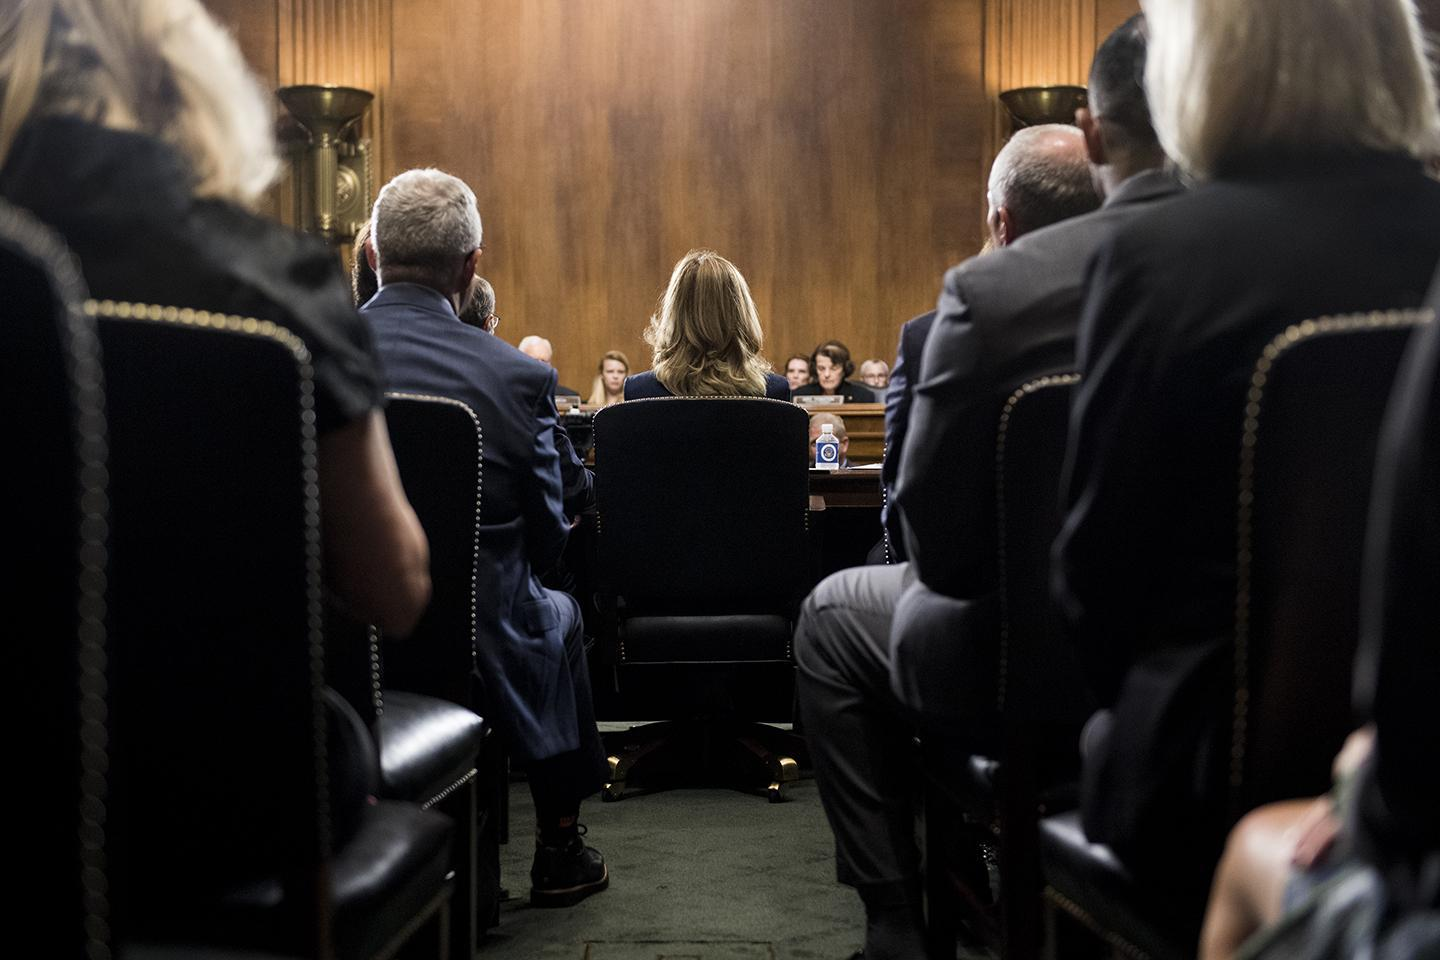 Dr. Christine Blasey Ford prepares to testify on Thursday, Sept. 27, 2018, during the Senate Judiciary Committee hearing on the nomination of Brett M. Kavanaugh to be an associate justice of the Supreme Court of the United States, focusing on allegations of sexual assault by Kavanaugh against Christine Blasey Ford in the early 1980s.